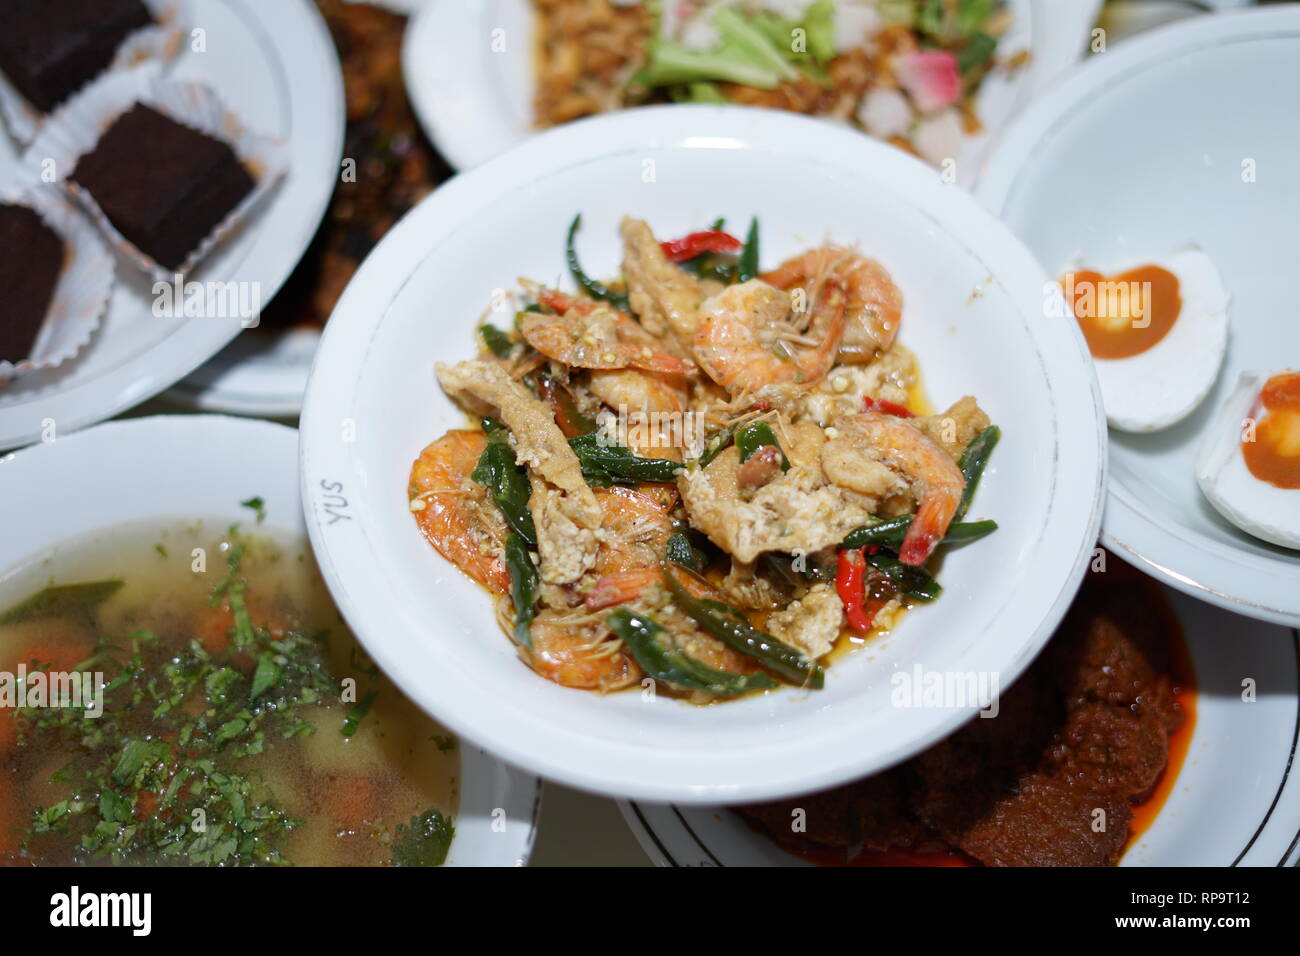 Delicious Fried Organic Coconut Shrimp - Stock Image